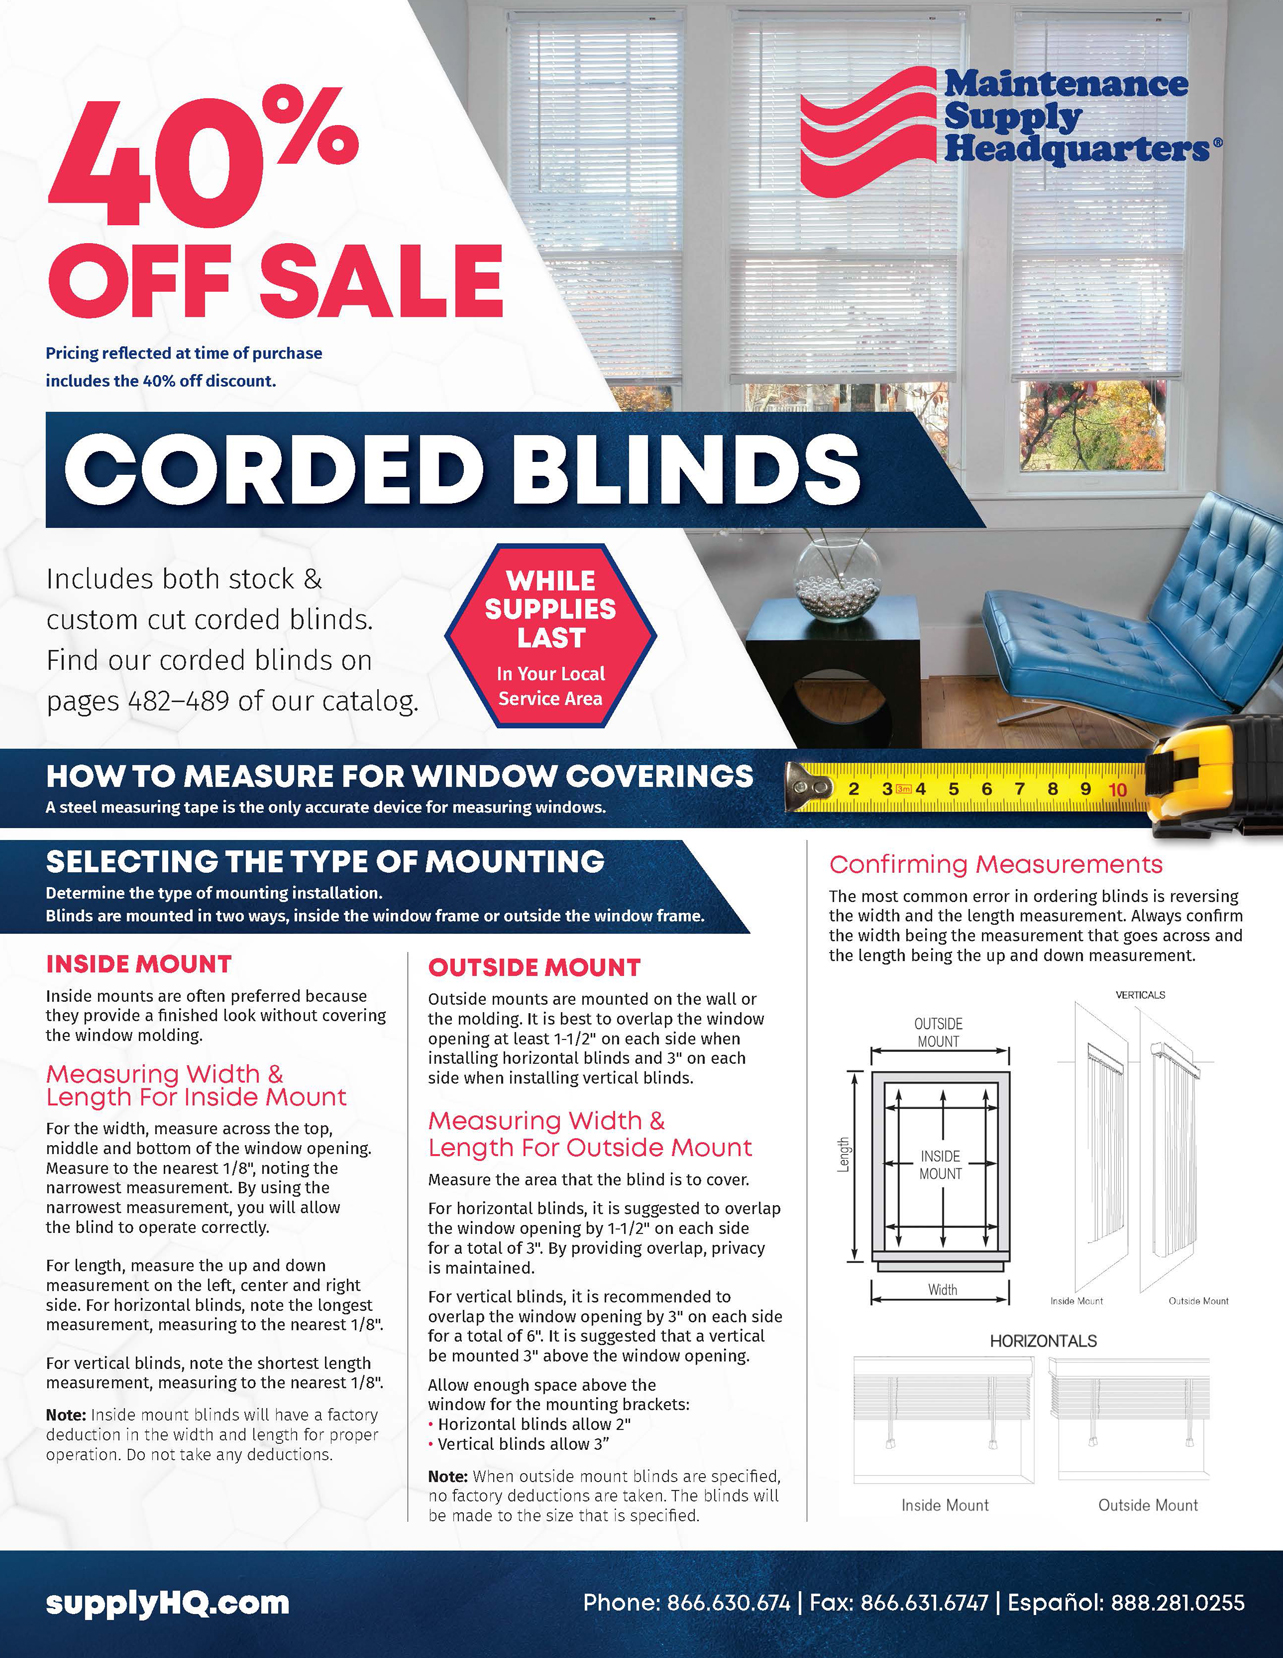 Corded Blinds Sale Flyer